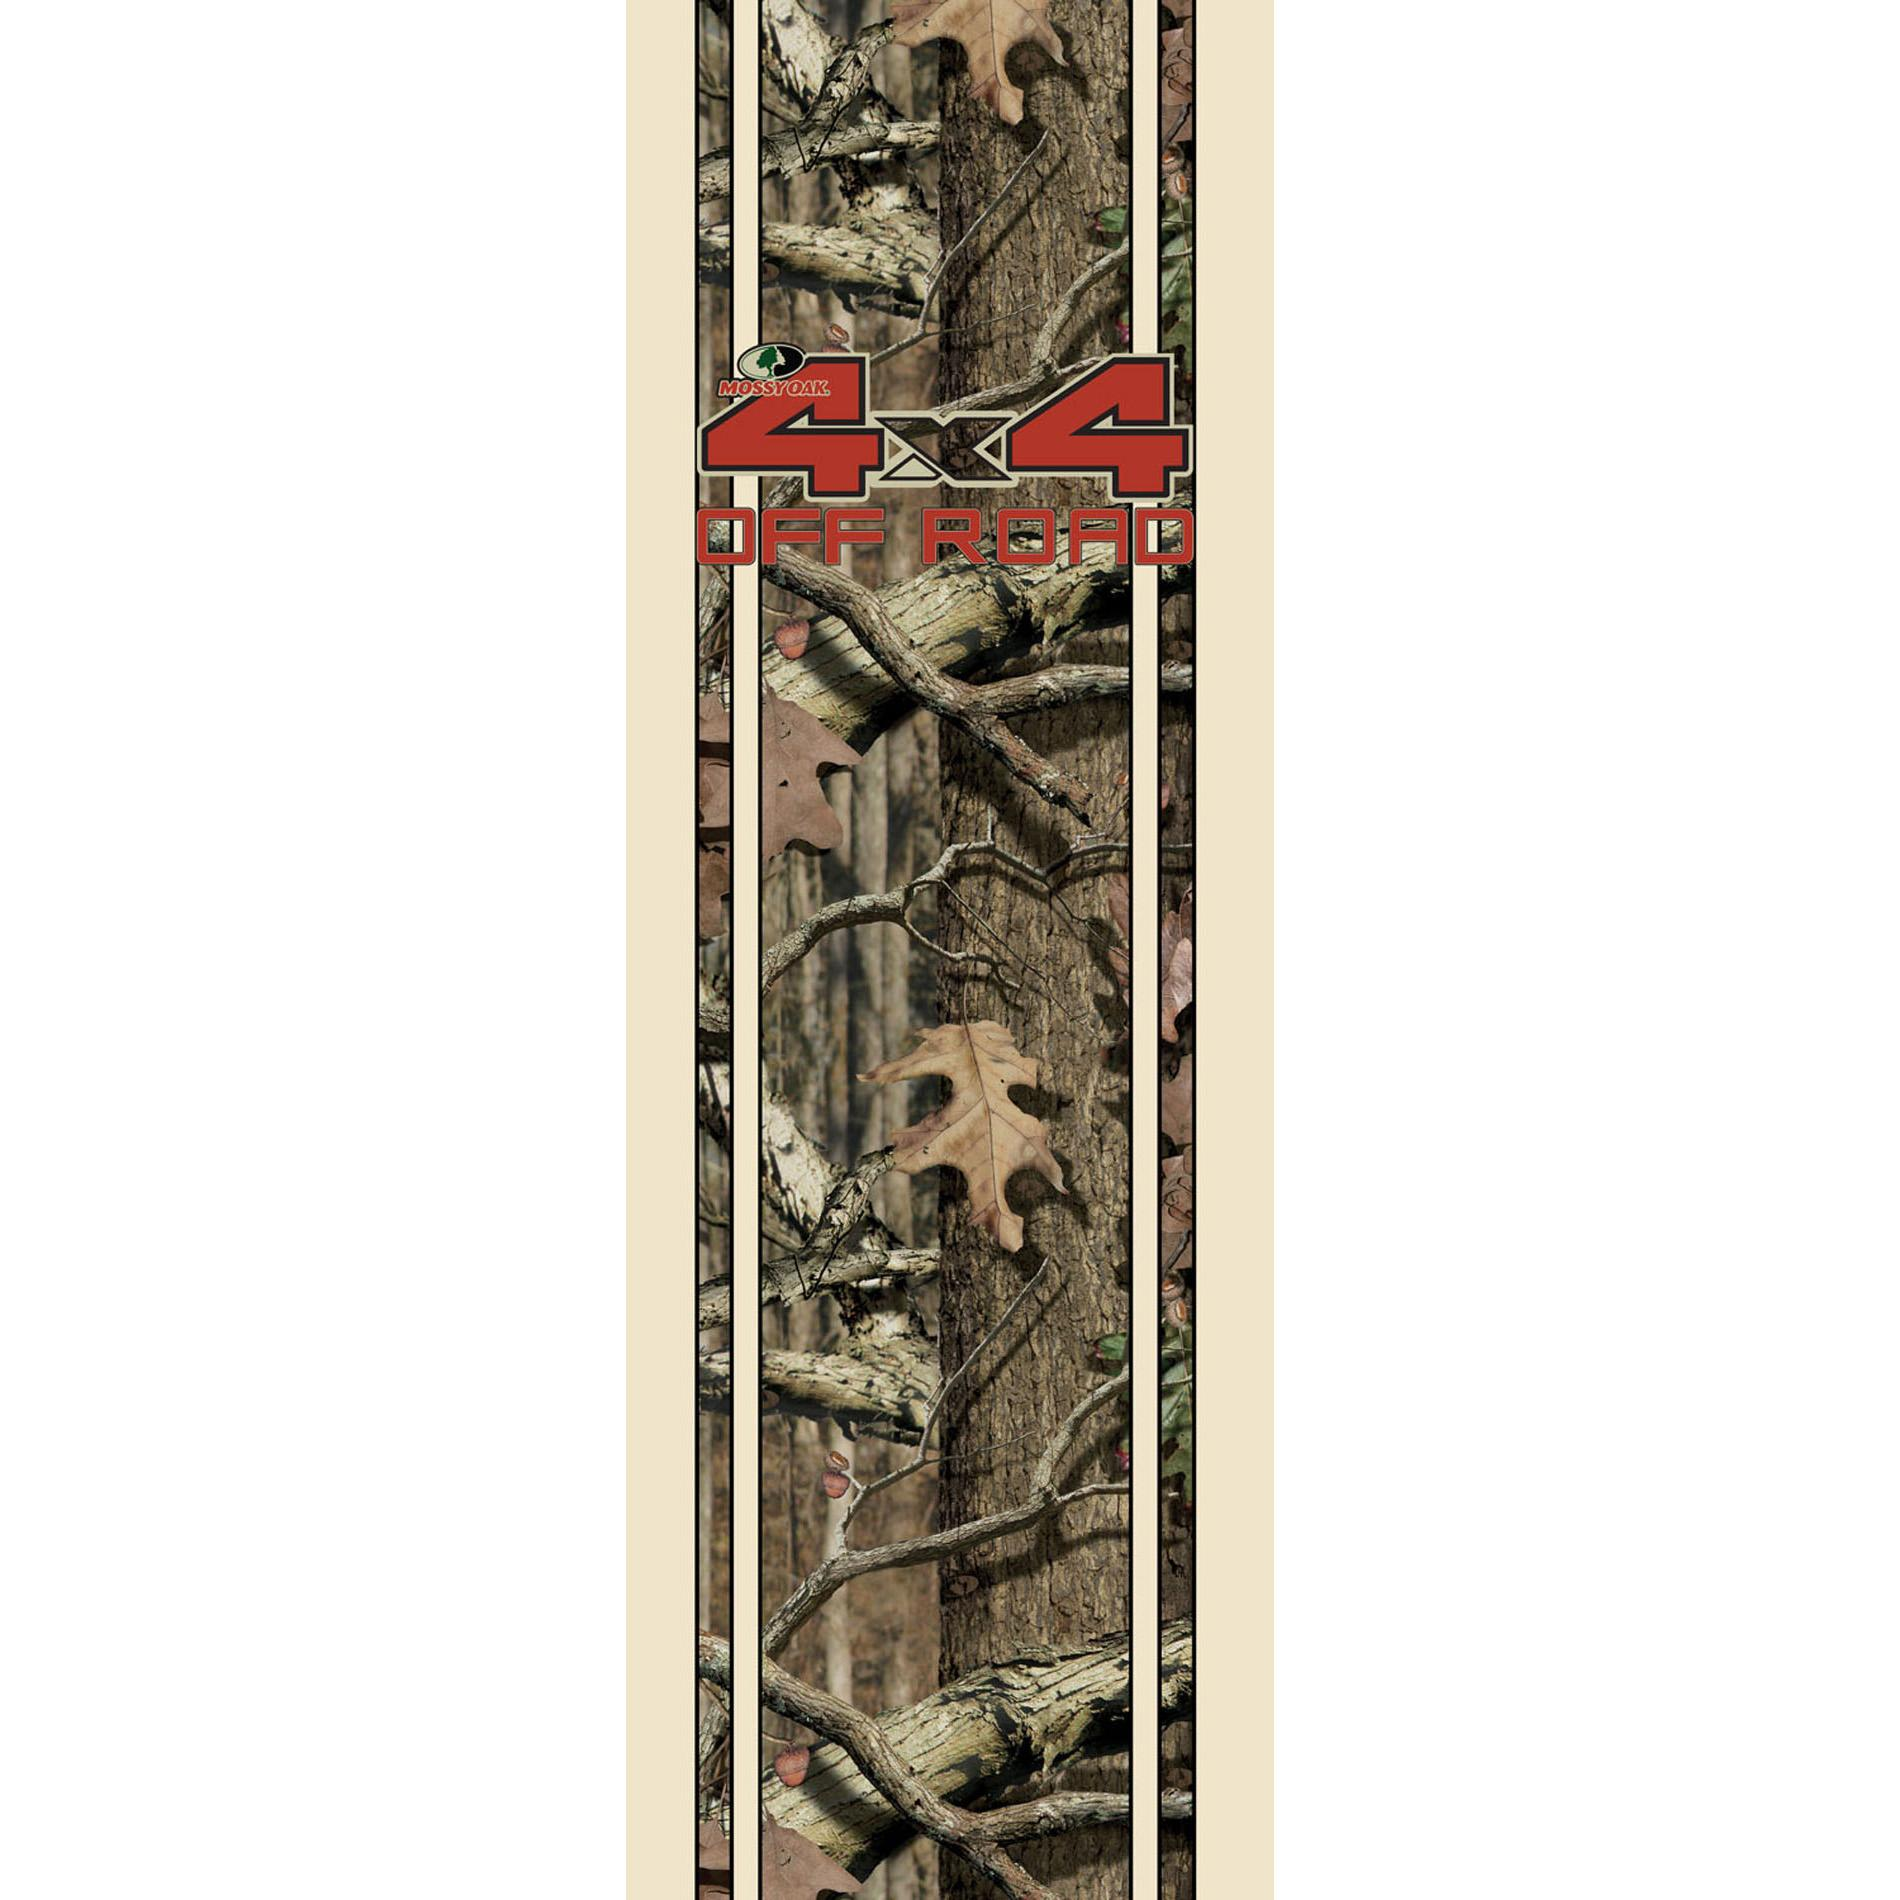 Mossy Oak Infinity Camo Red Off Road Rear Quarter Panel Kit - Thumbnail 2